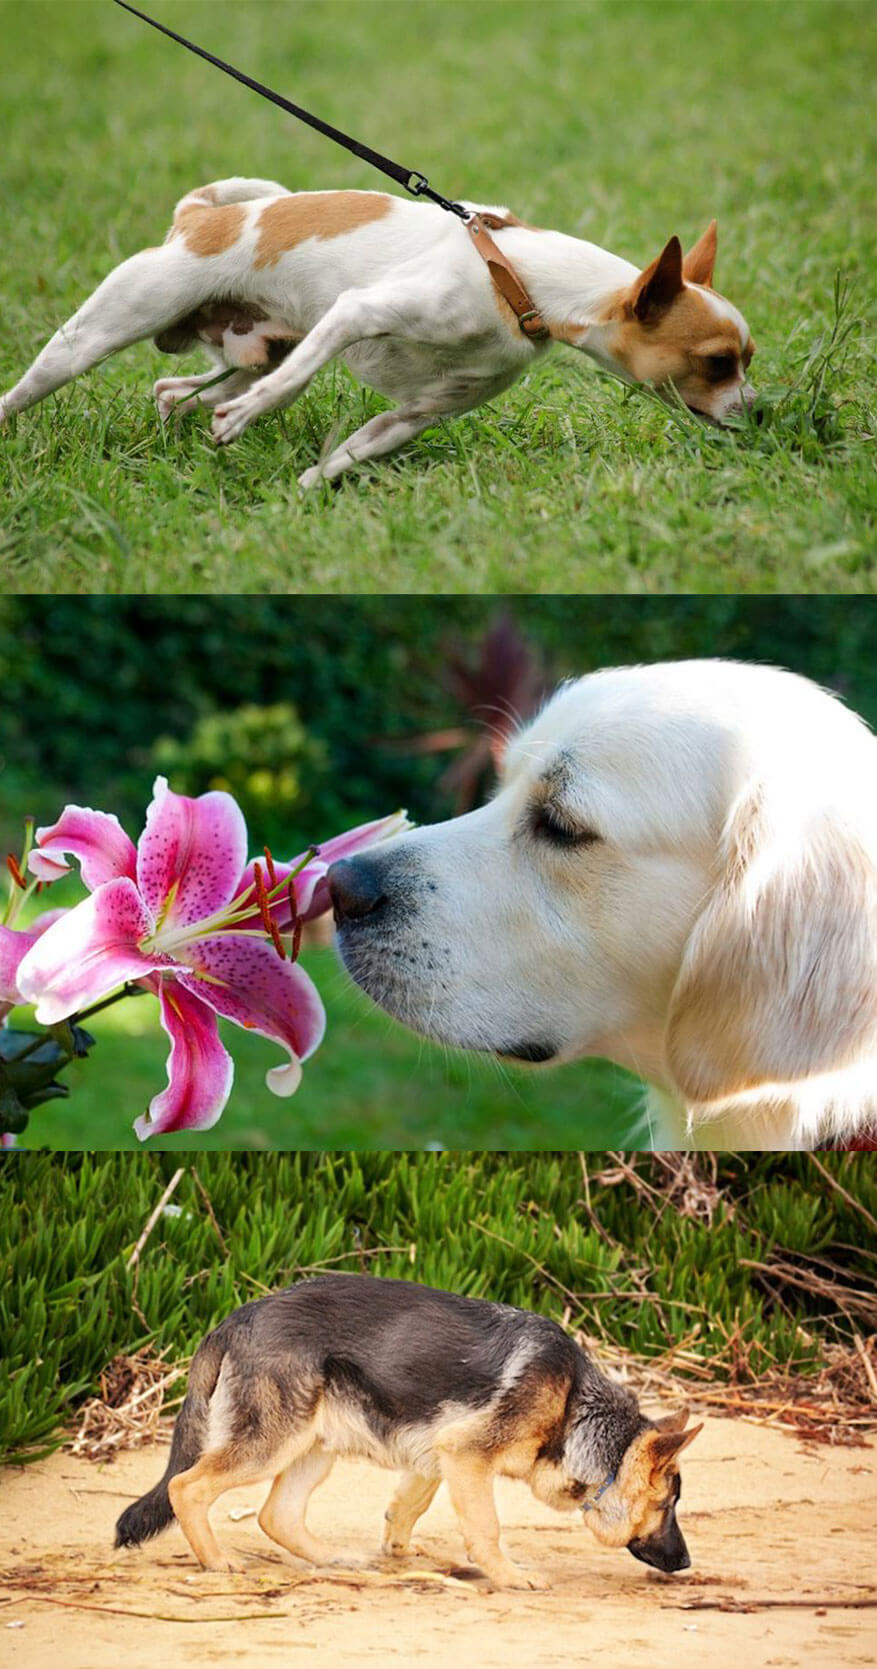 Know how much better a dog sense of smell is than Human